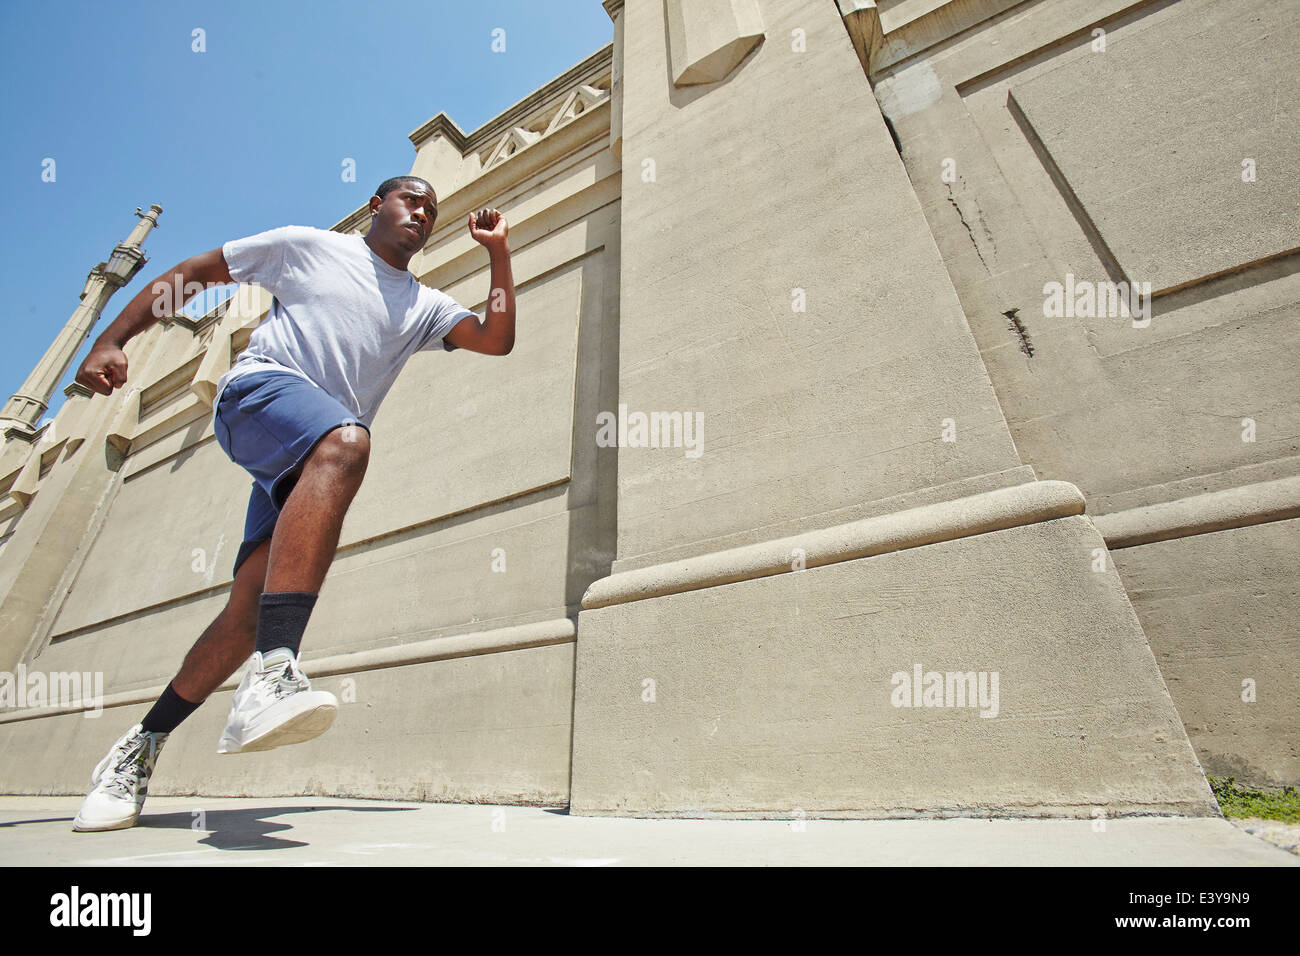 Low angle view of young man speed running - Stock Image